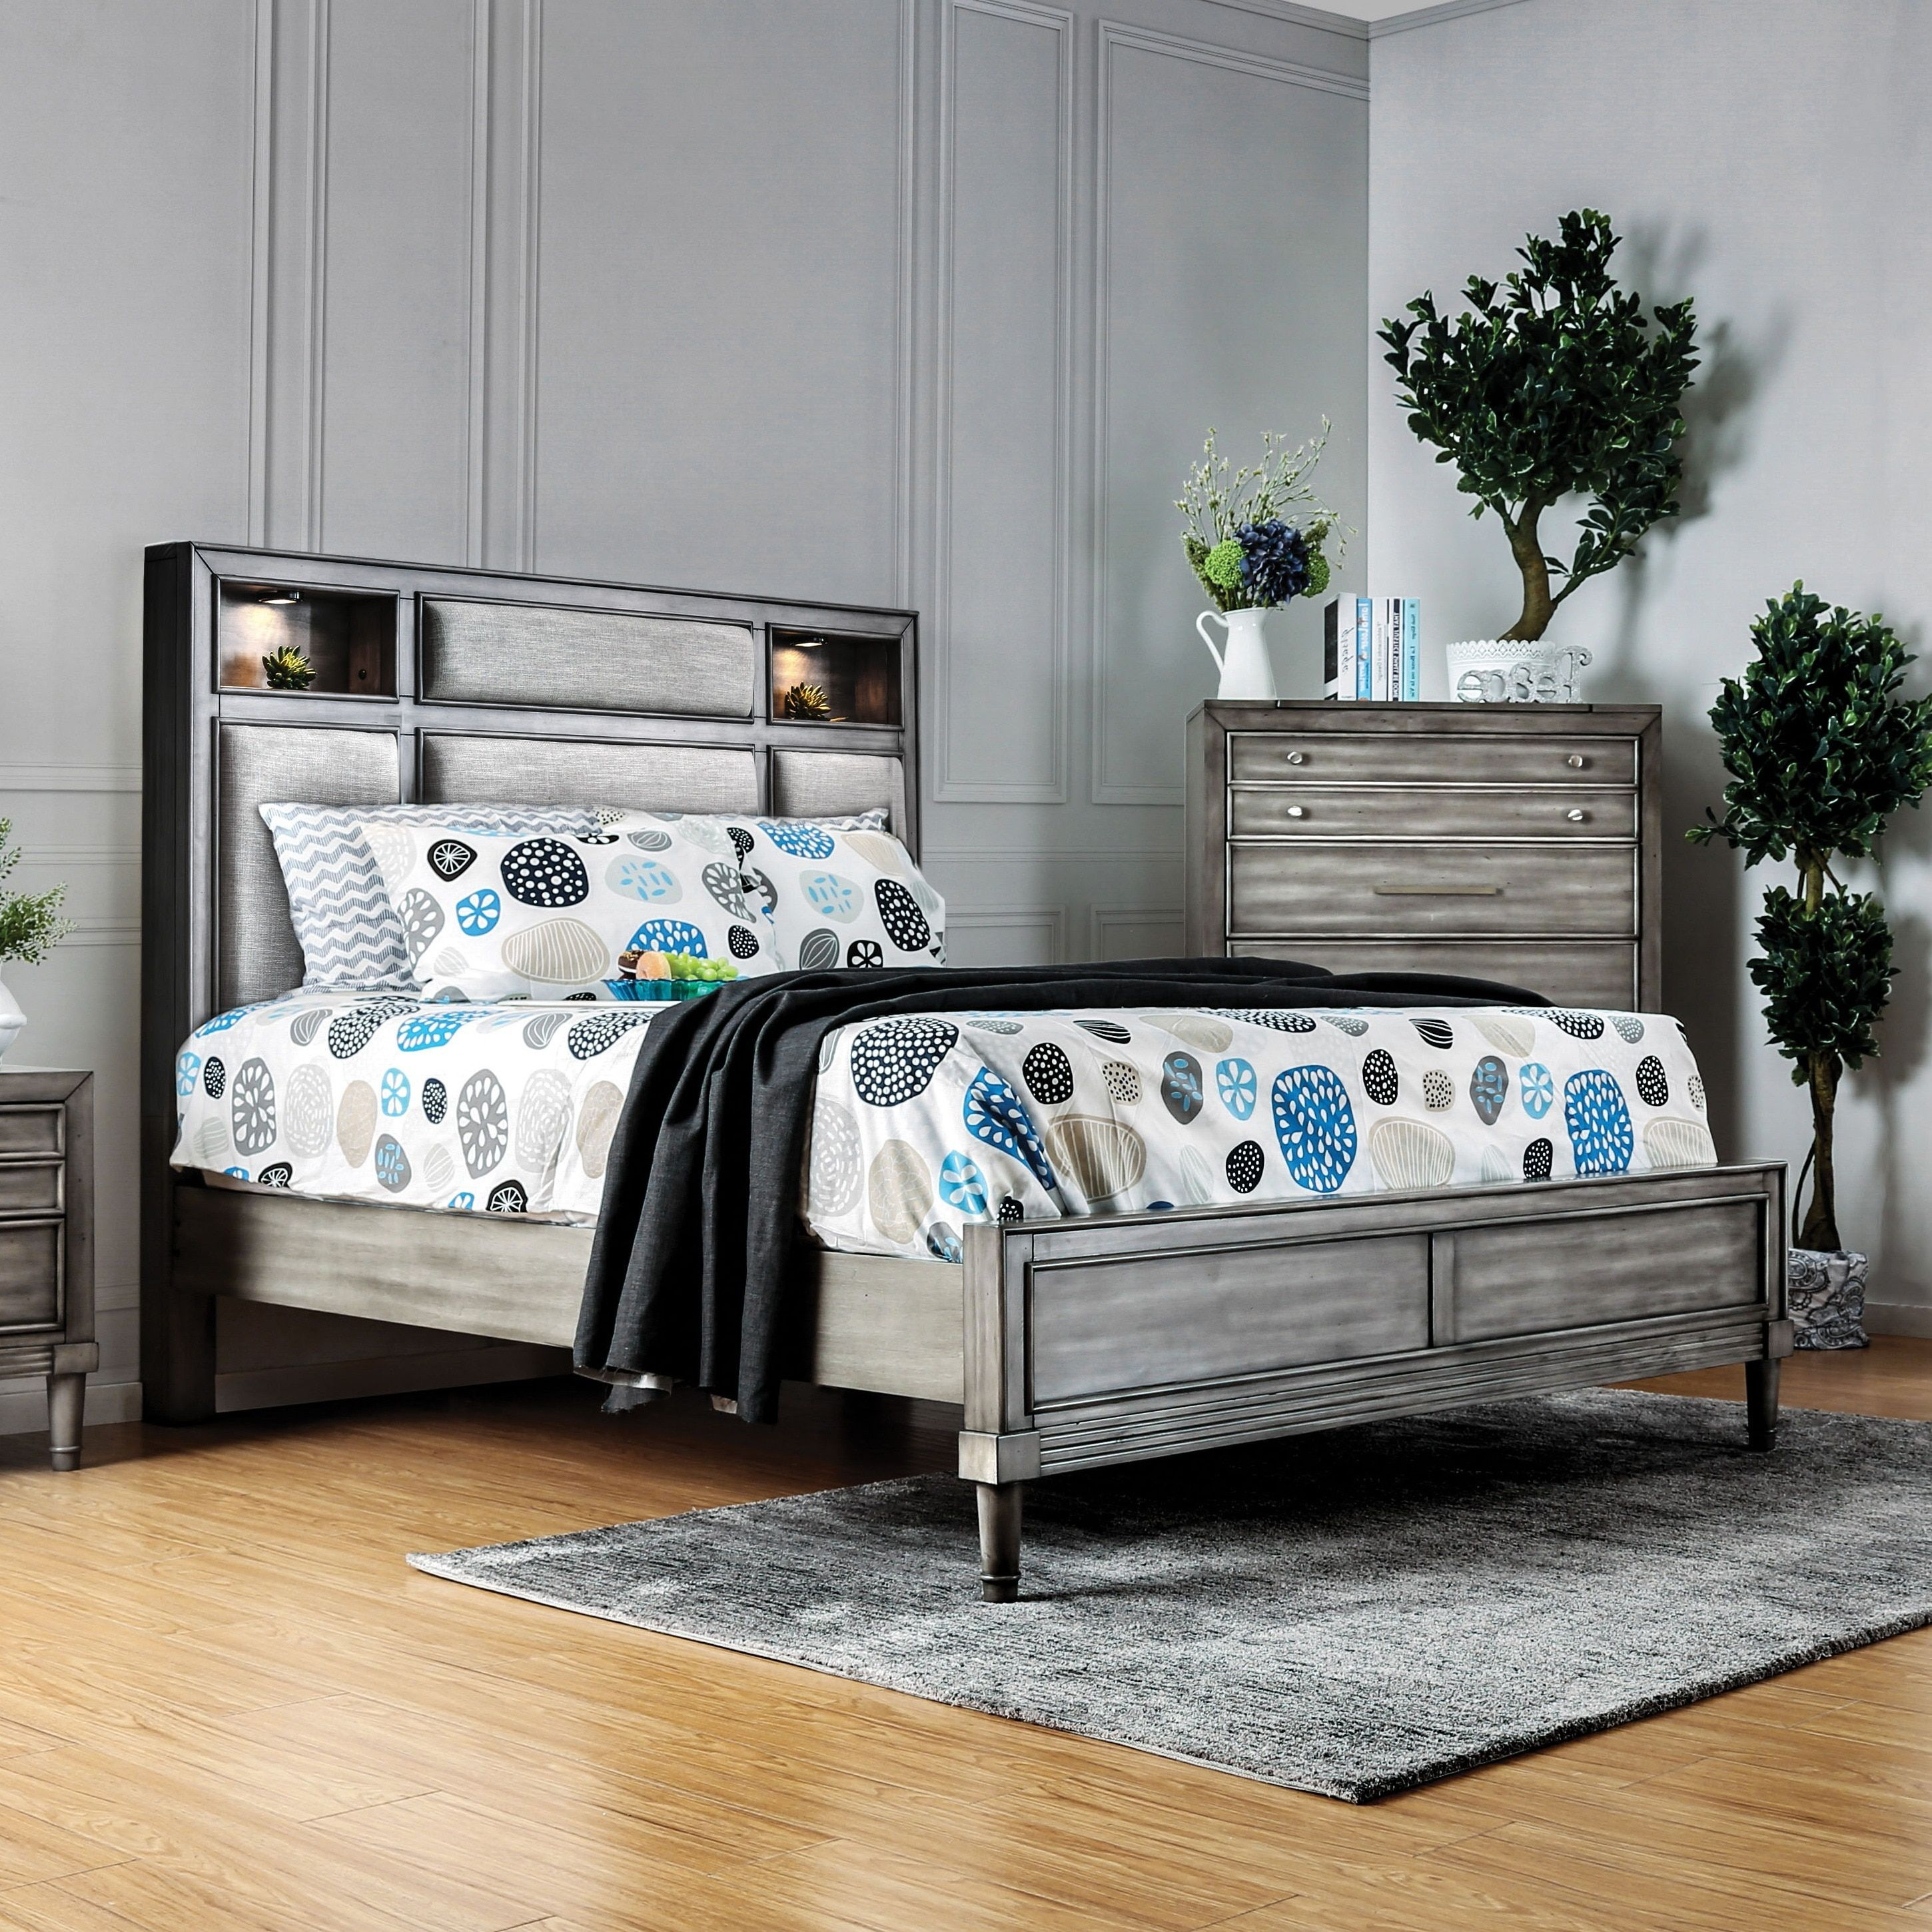 plus depot wondrous groovy shore storage design size build by south with wa drawers how beds to a together one ashley platform maribel compelling step signature bed in pure home queen